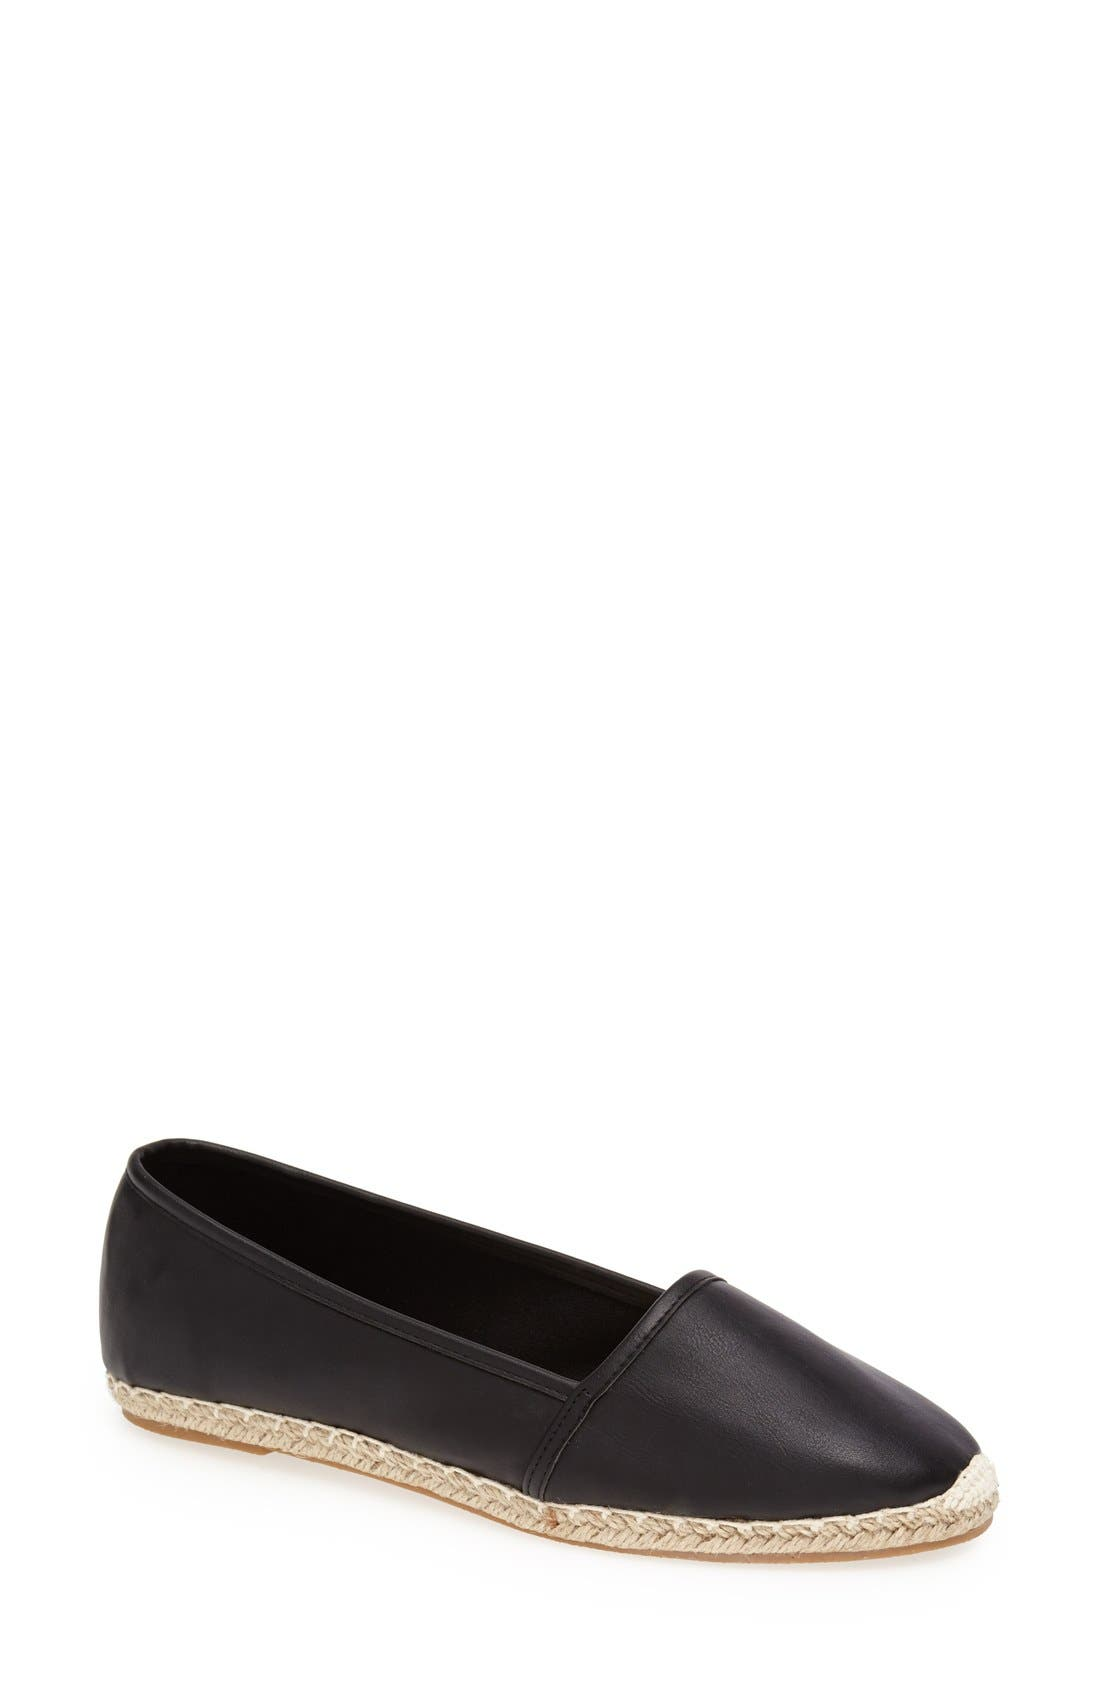 Alternate Image 1 Selected - Topshop 'Tallulah' Espadrille Flat